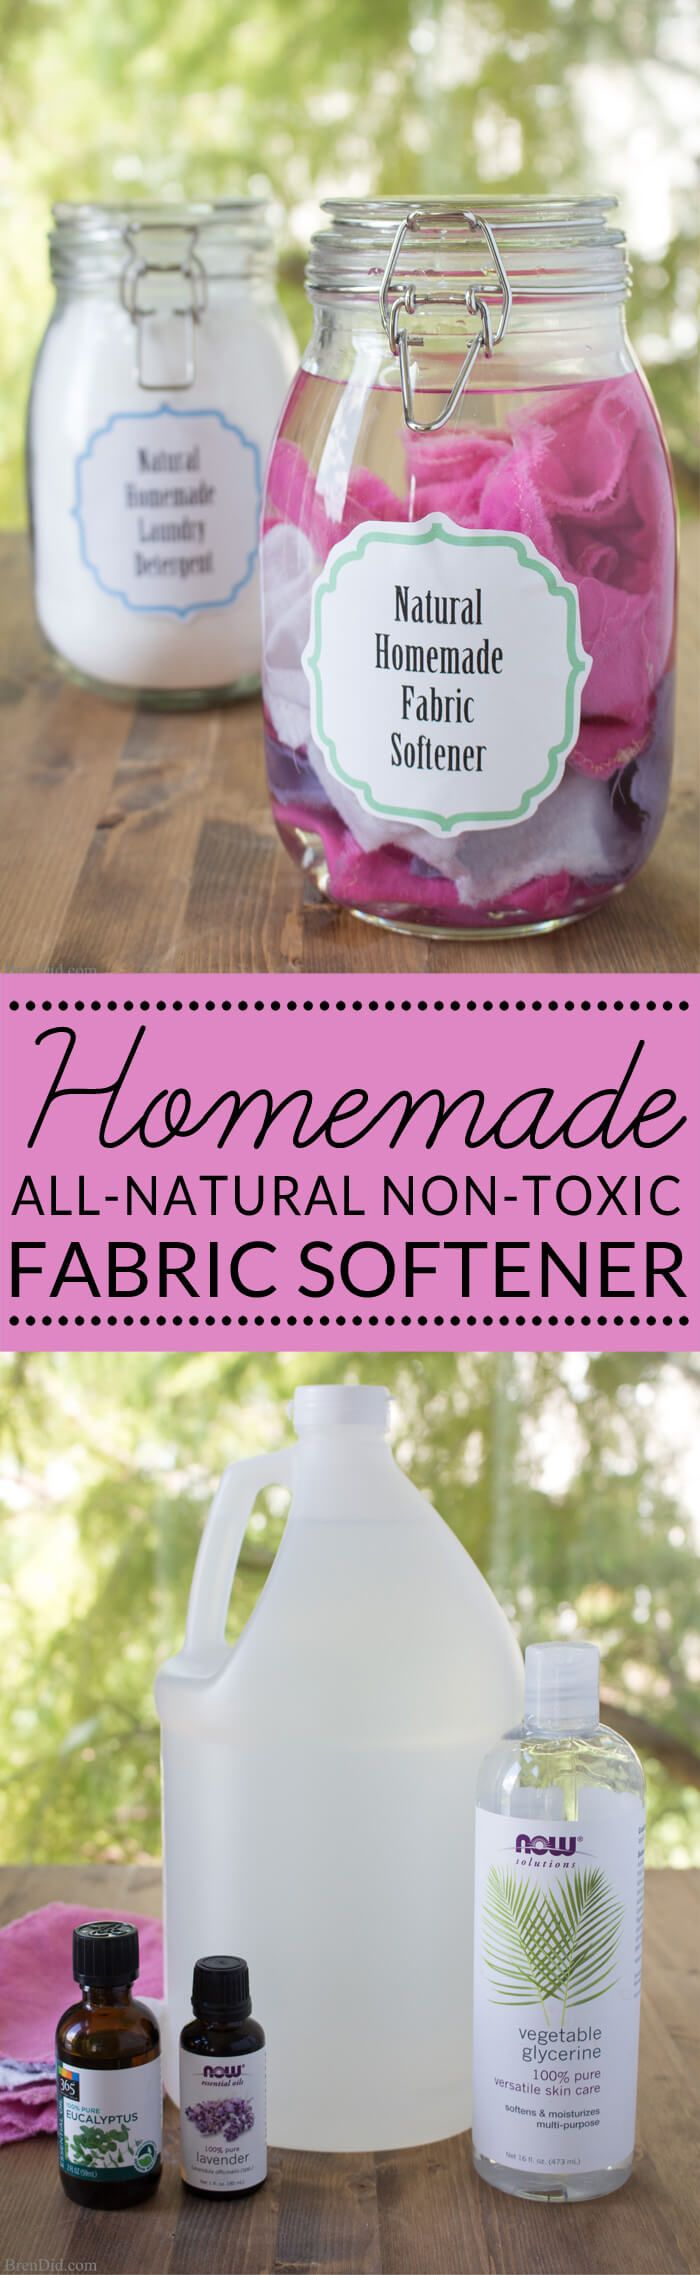 homemade+fabric+softener+|+all+natural+fabric+softener+|+green+cleaning+and+laundry+|+non-toxic+fabric+softener+-+Learn+how+to+make+homemade+fabric+softener+dryer+sheets.++via+@brendidblog